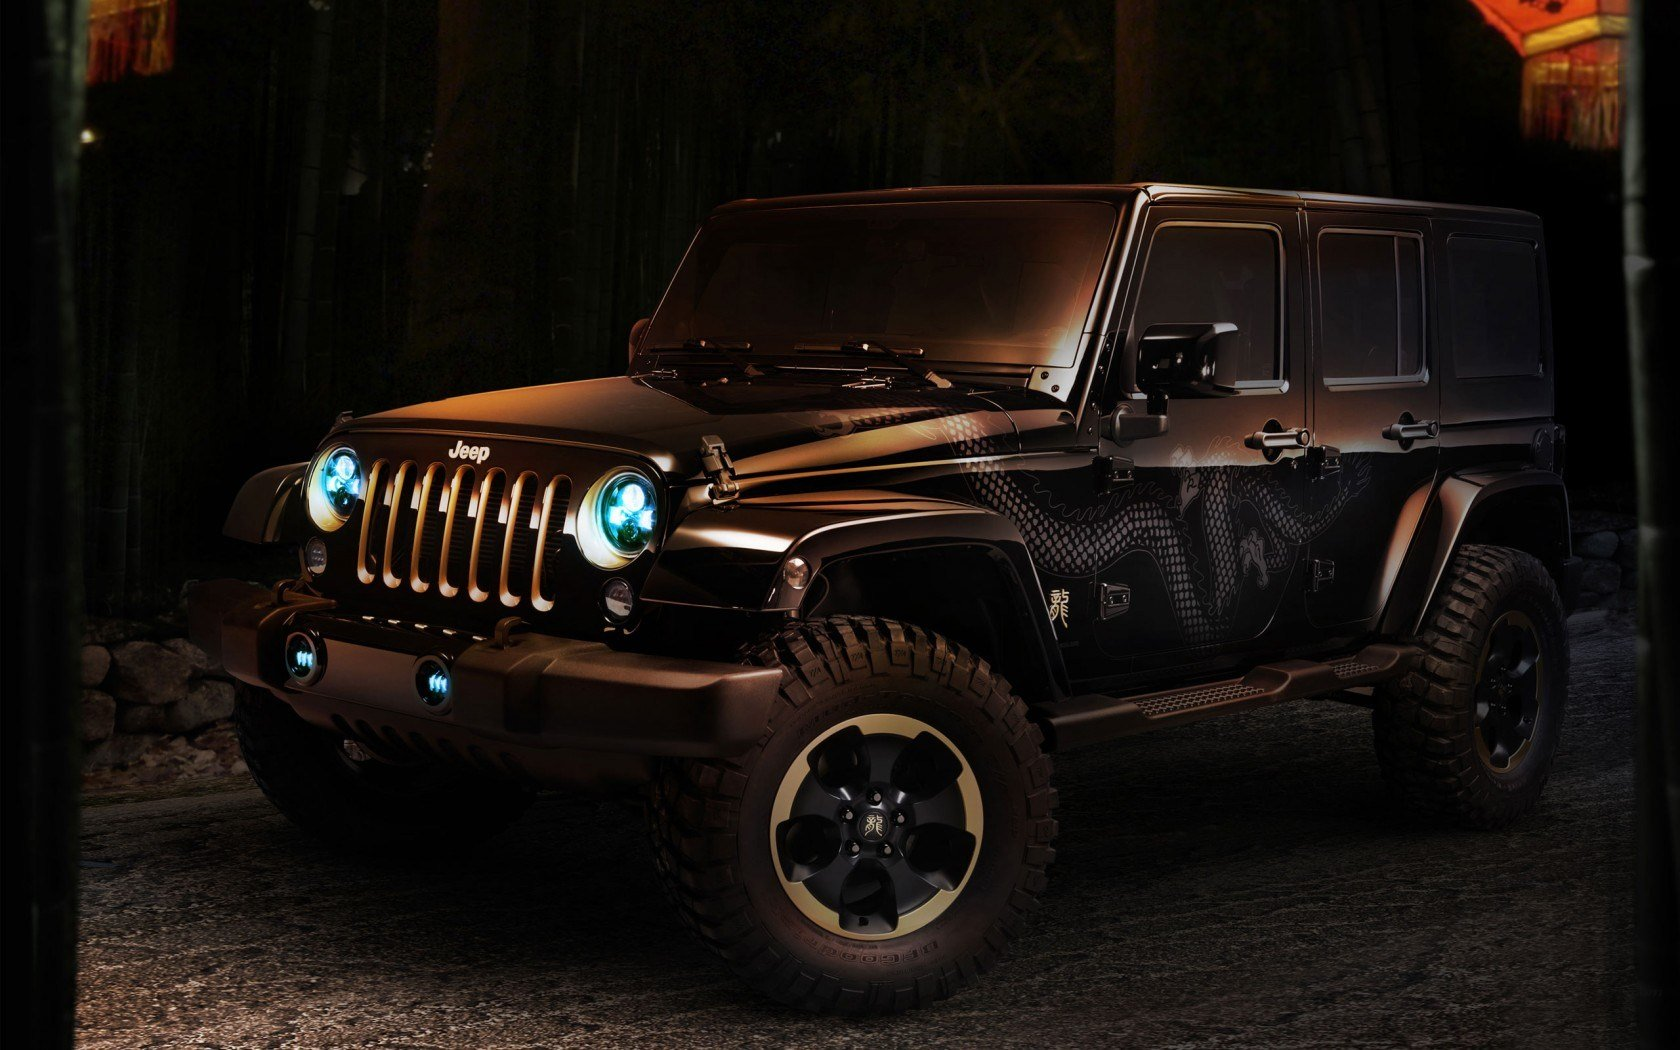 Latest Jeep Wrangler Dragon Concept Wallpaper Hd Car Wallpapers Free Download